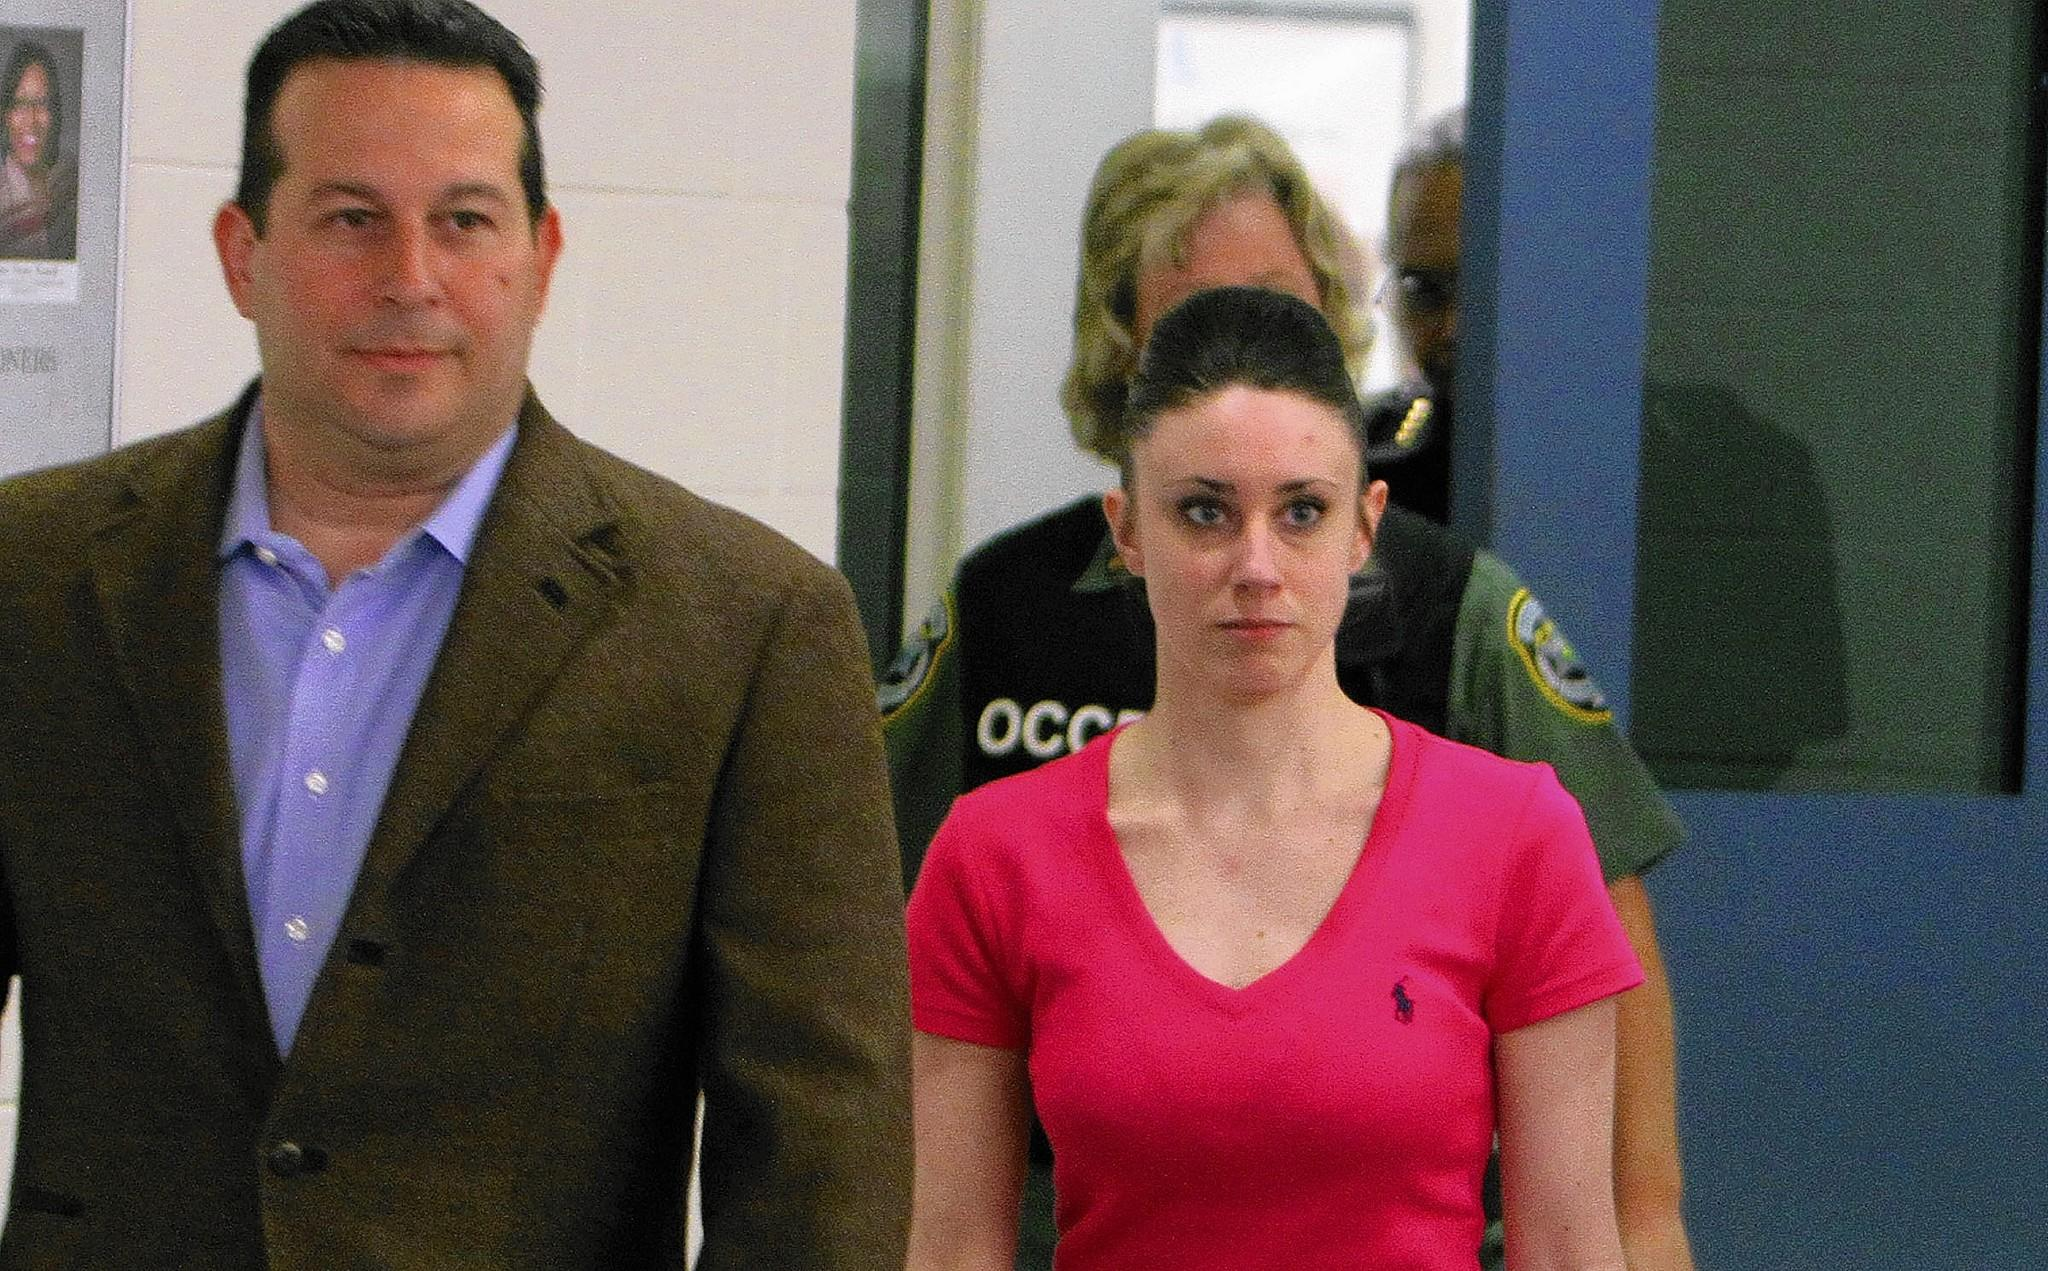 Casey Anthony, 25, is released Sunday, July 17, 2011 from the Orange County Corrections Facility after a jury found her not guilty of the 2008 death of her 2-year-old daughter, Caylee Marie Anthony.